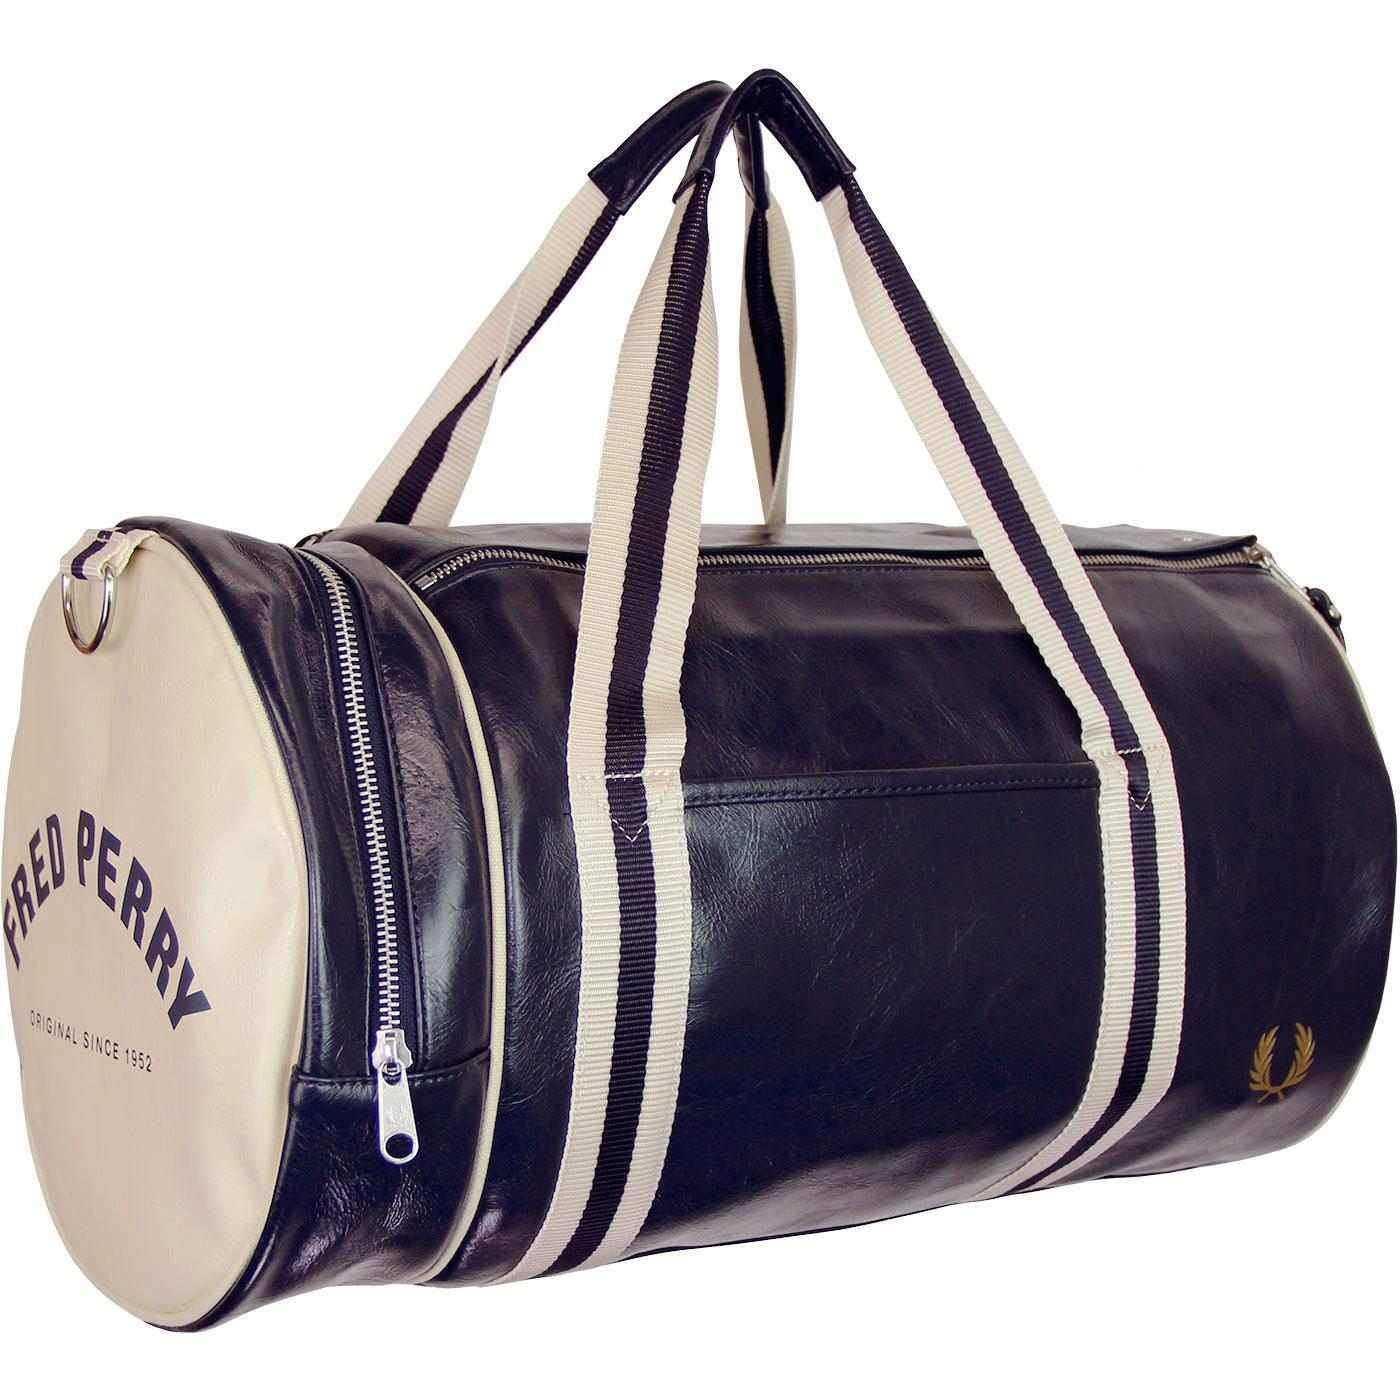 FRED PERRY Retro Classic Barrel Bag - Navy